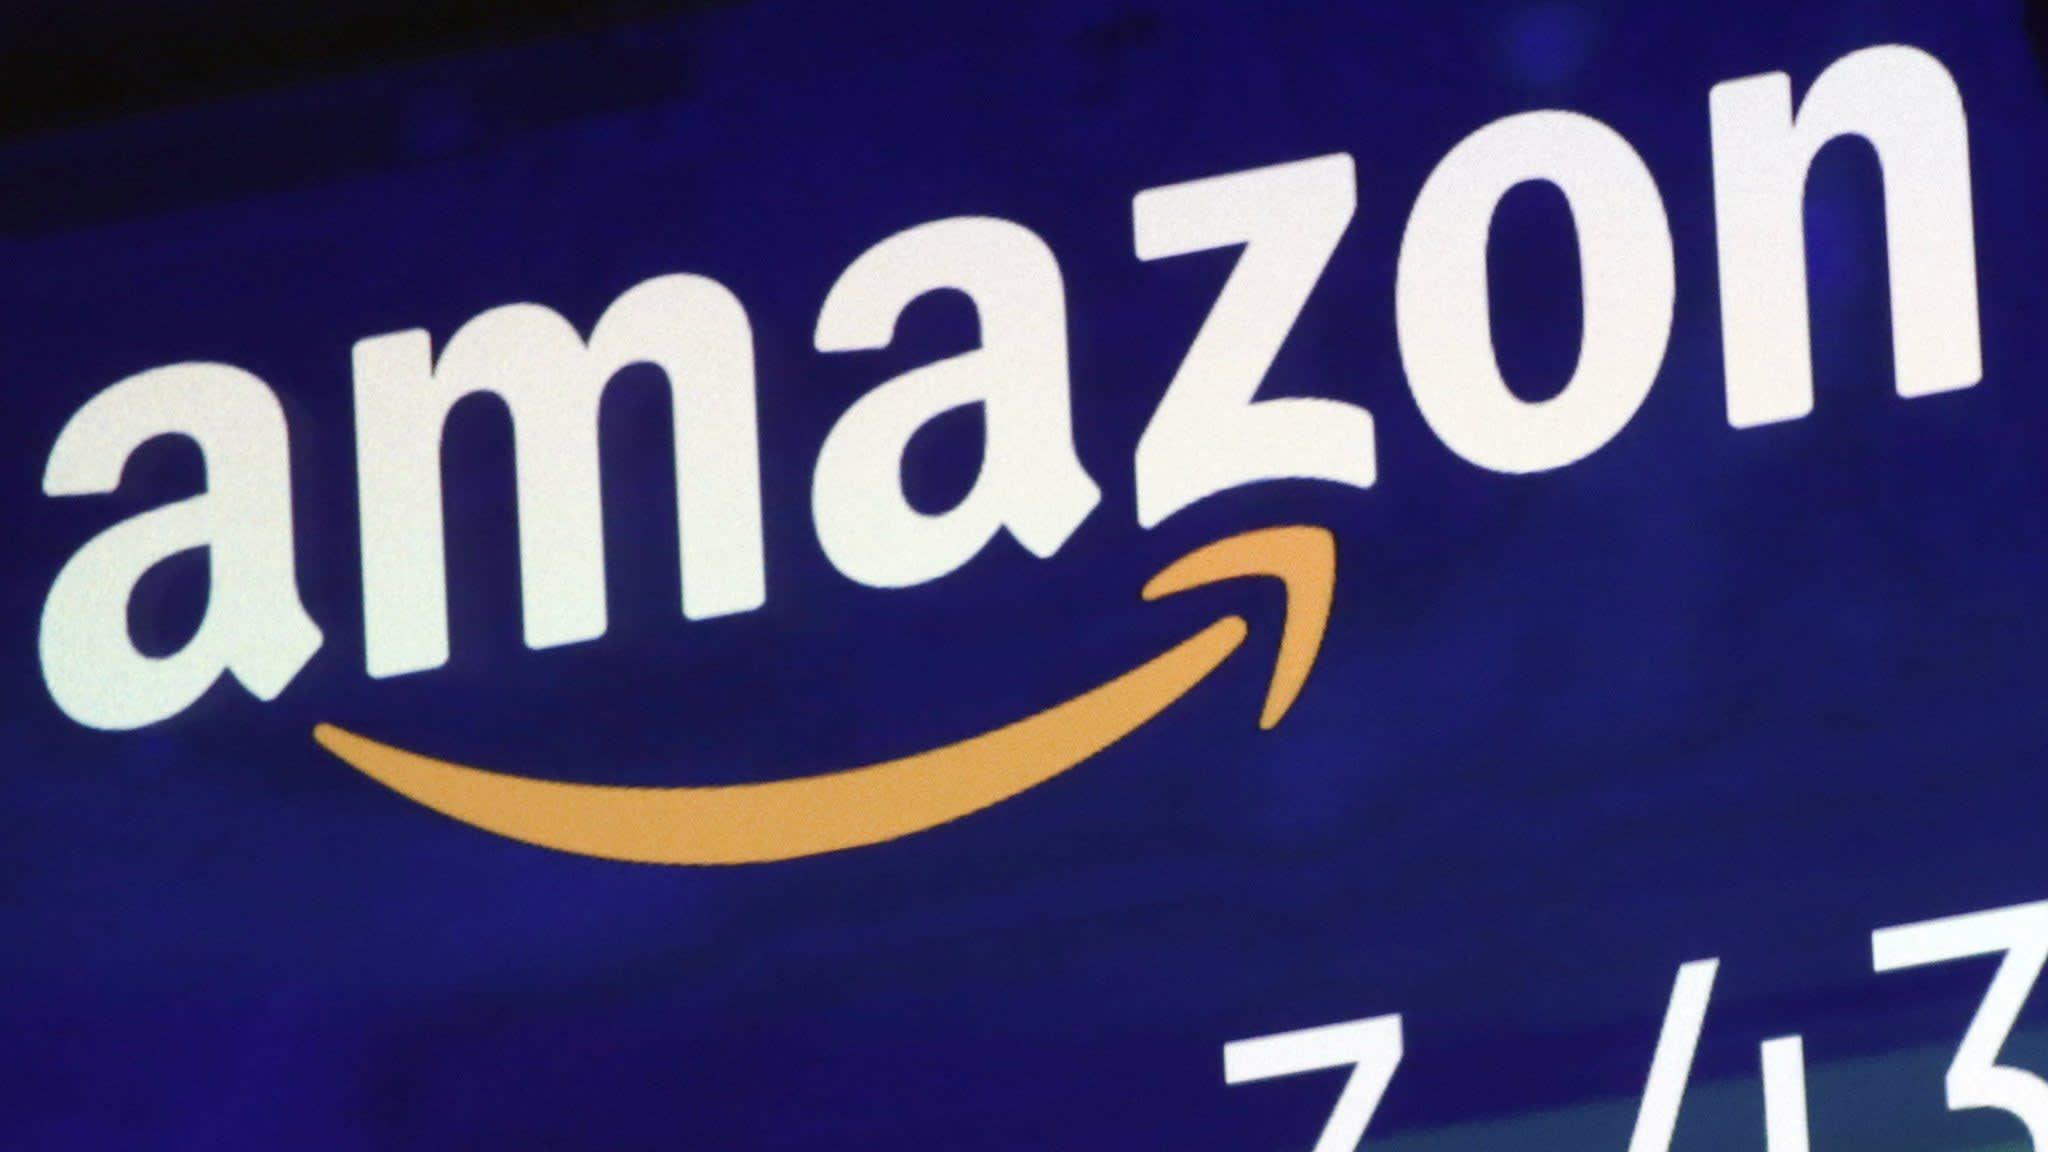 Amazon joins Apple to become second $1tn company